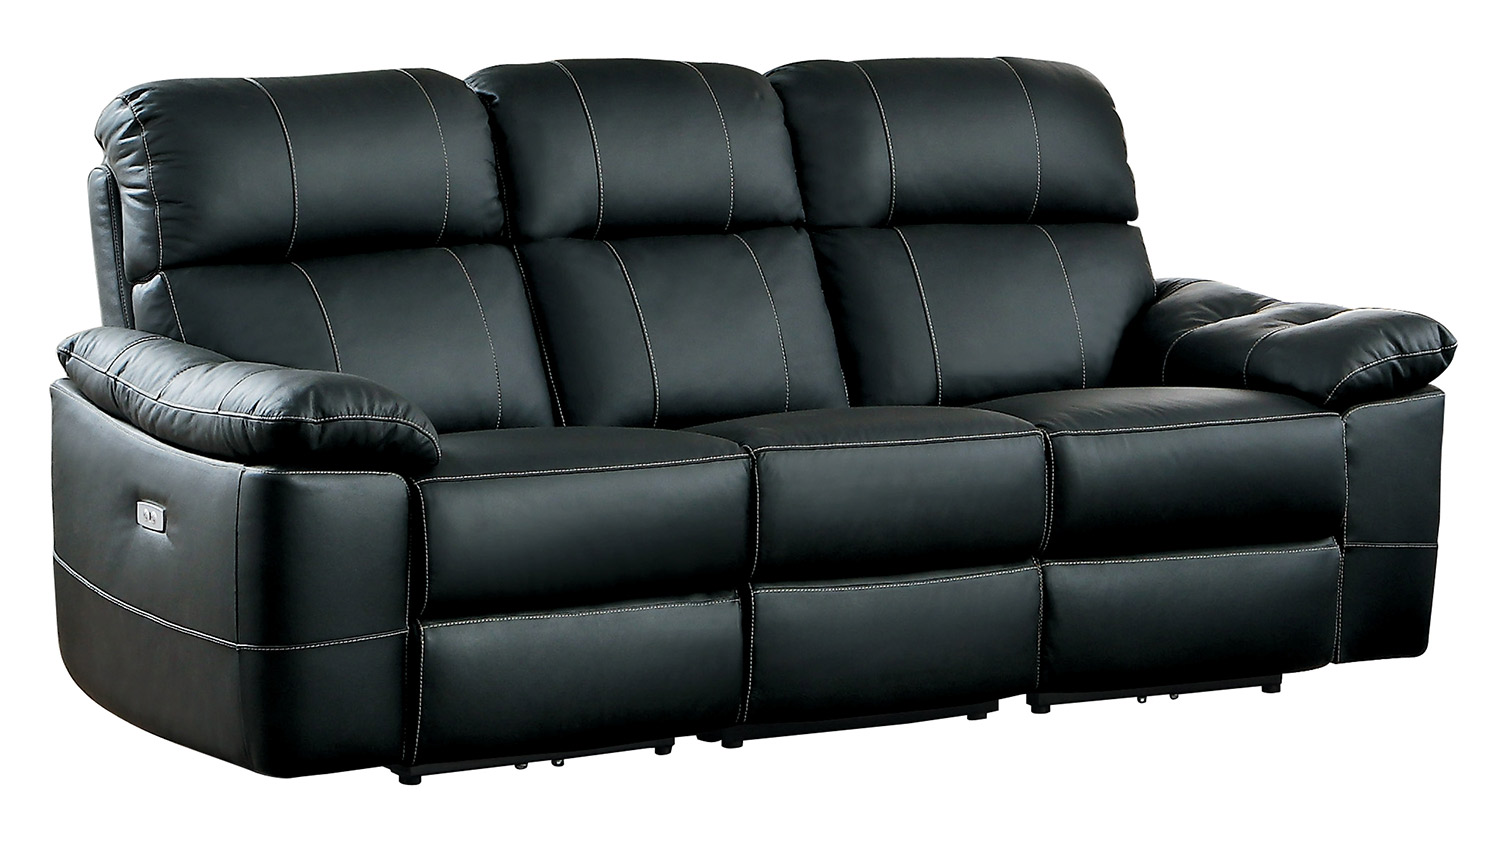 homelegance nicasio power double reclining sofa black leather - Black Leather Loveseat